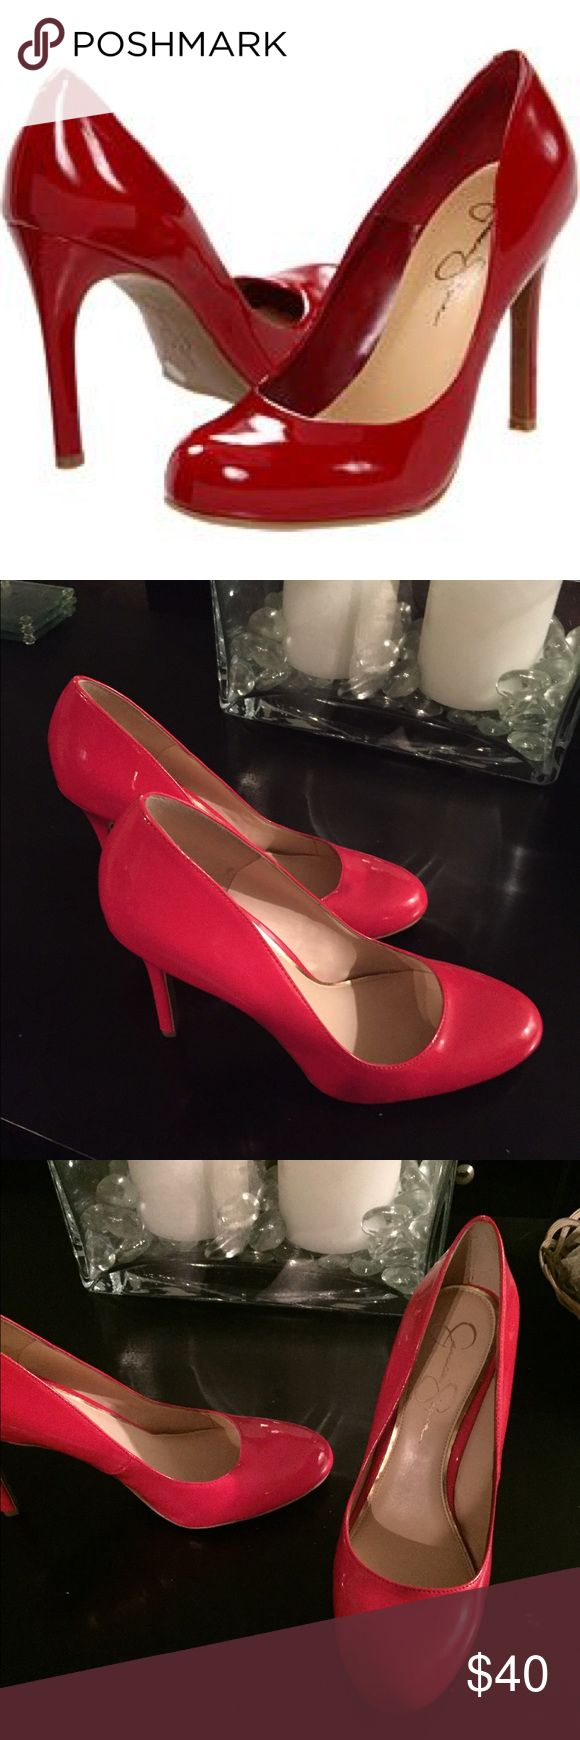 NWOTs Jessica Simpson Red Patent Leather Heels These beautiful shoes are brand new and were only tried on. Unfortunately my fat feet won't fit in them. 😒 Jessica Simpson Shoes